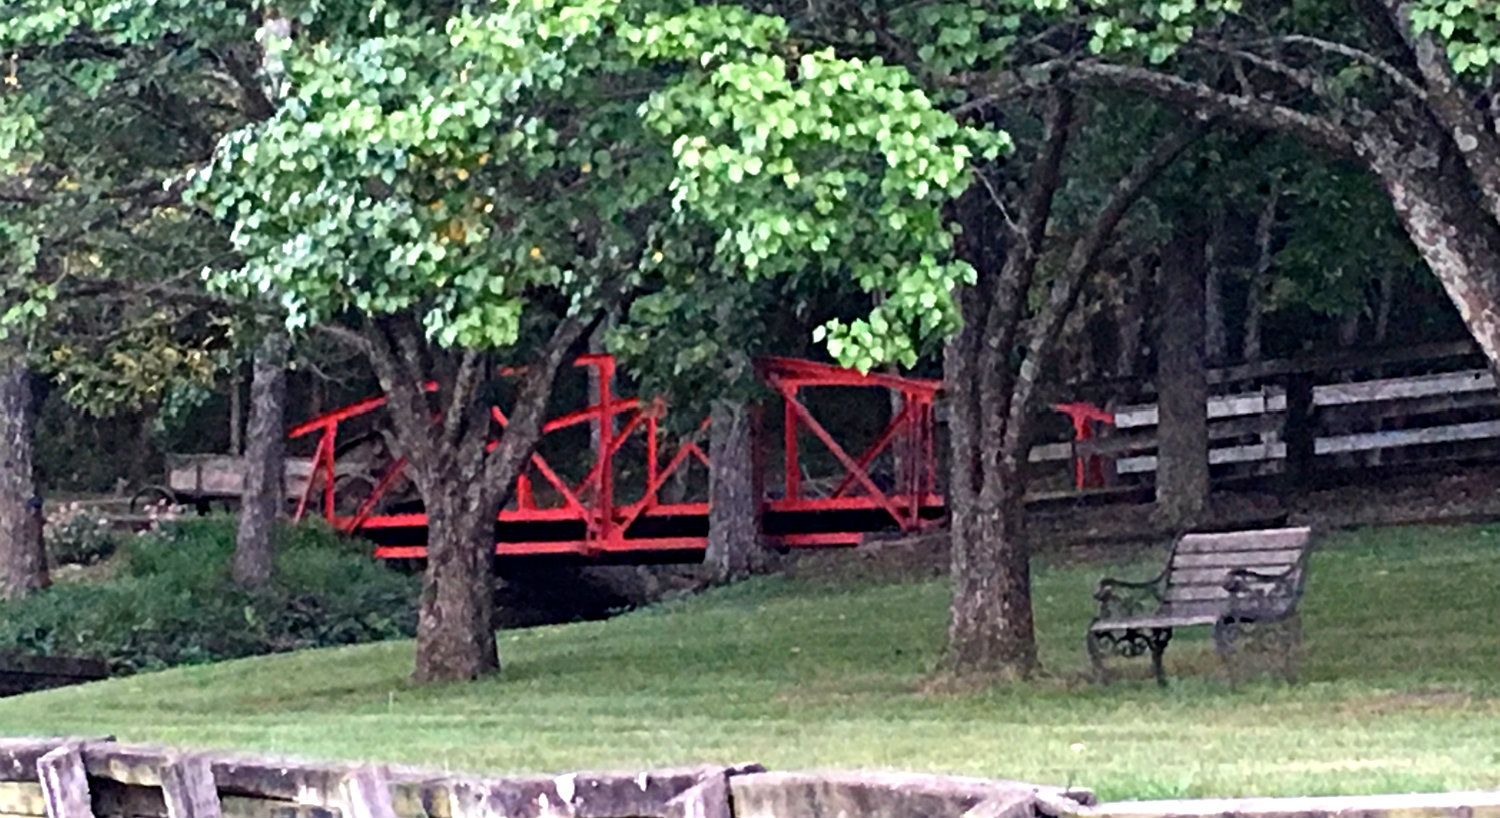 View of red bridge through the trees